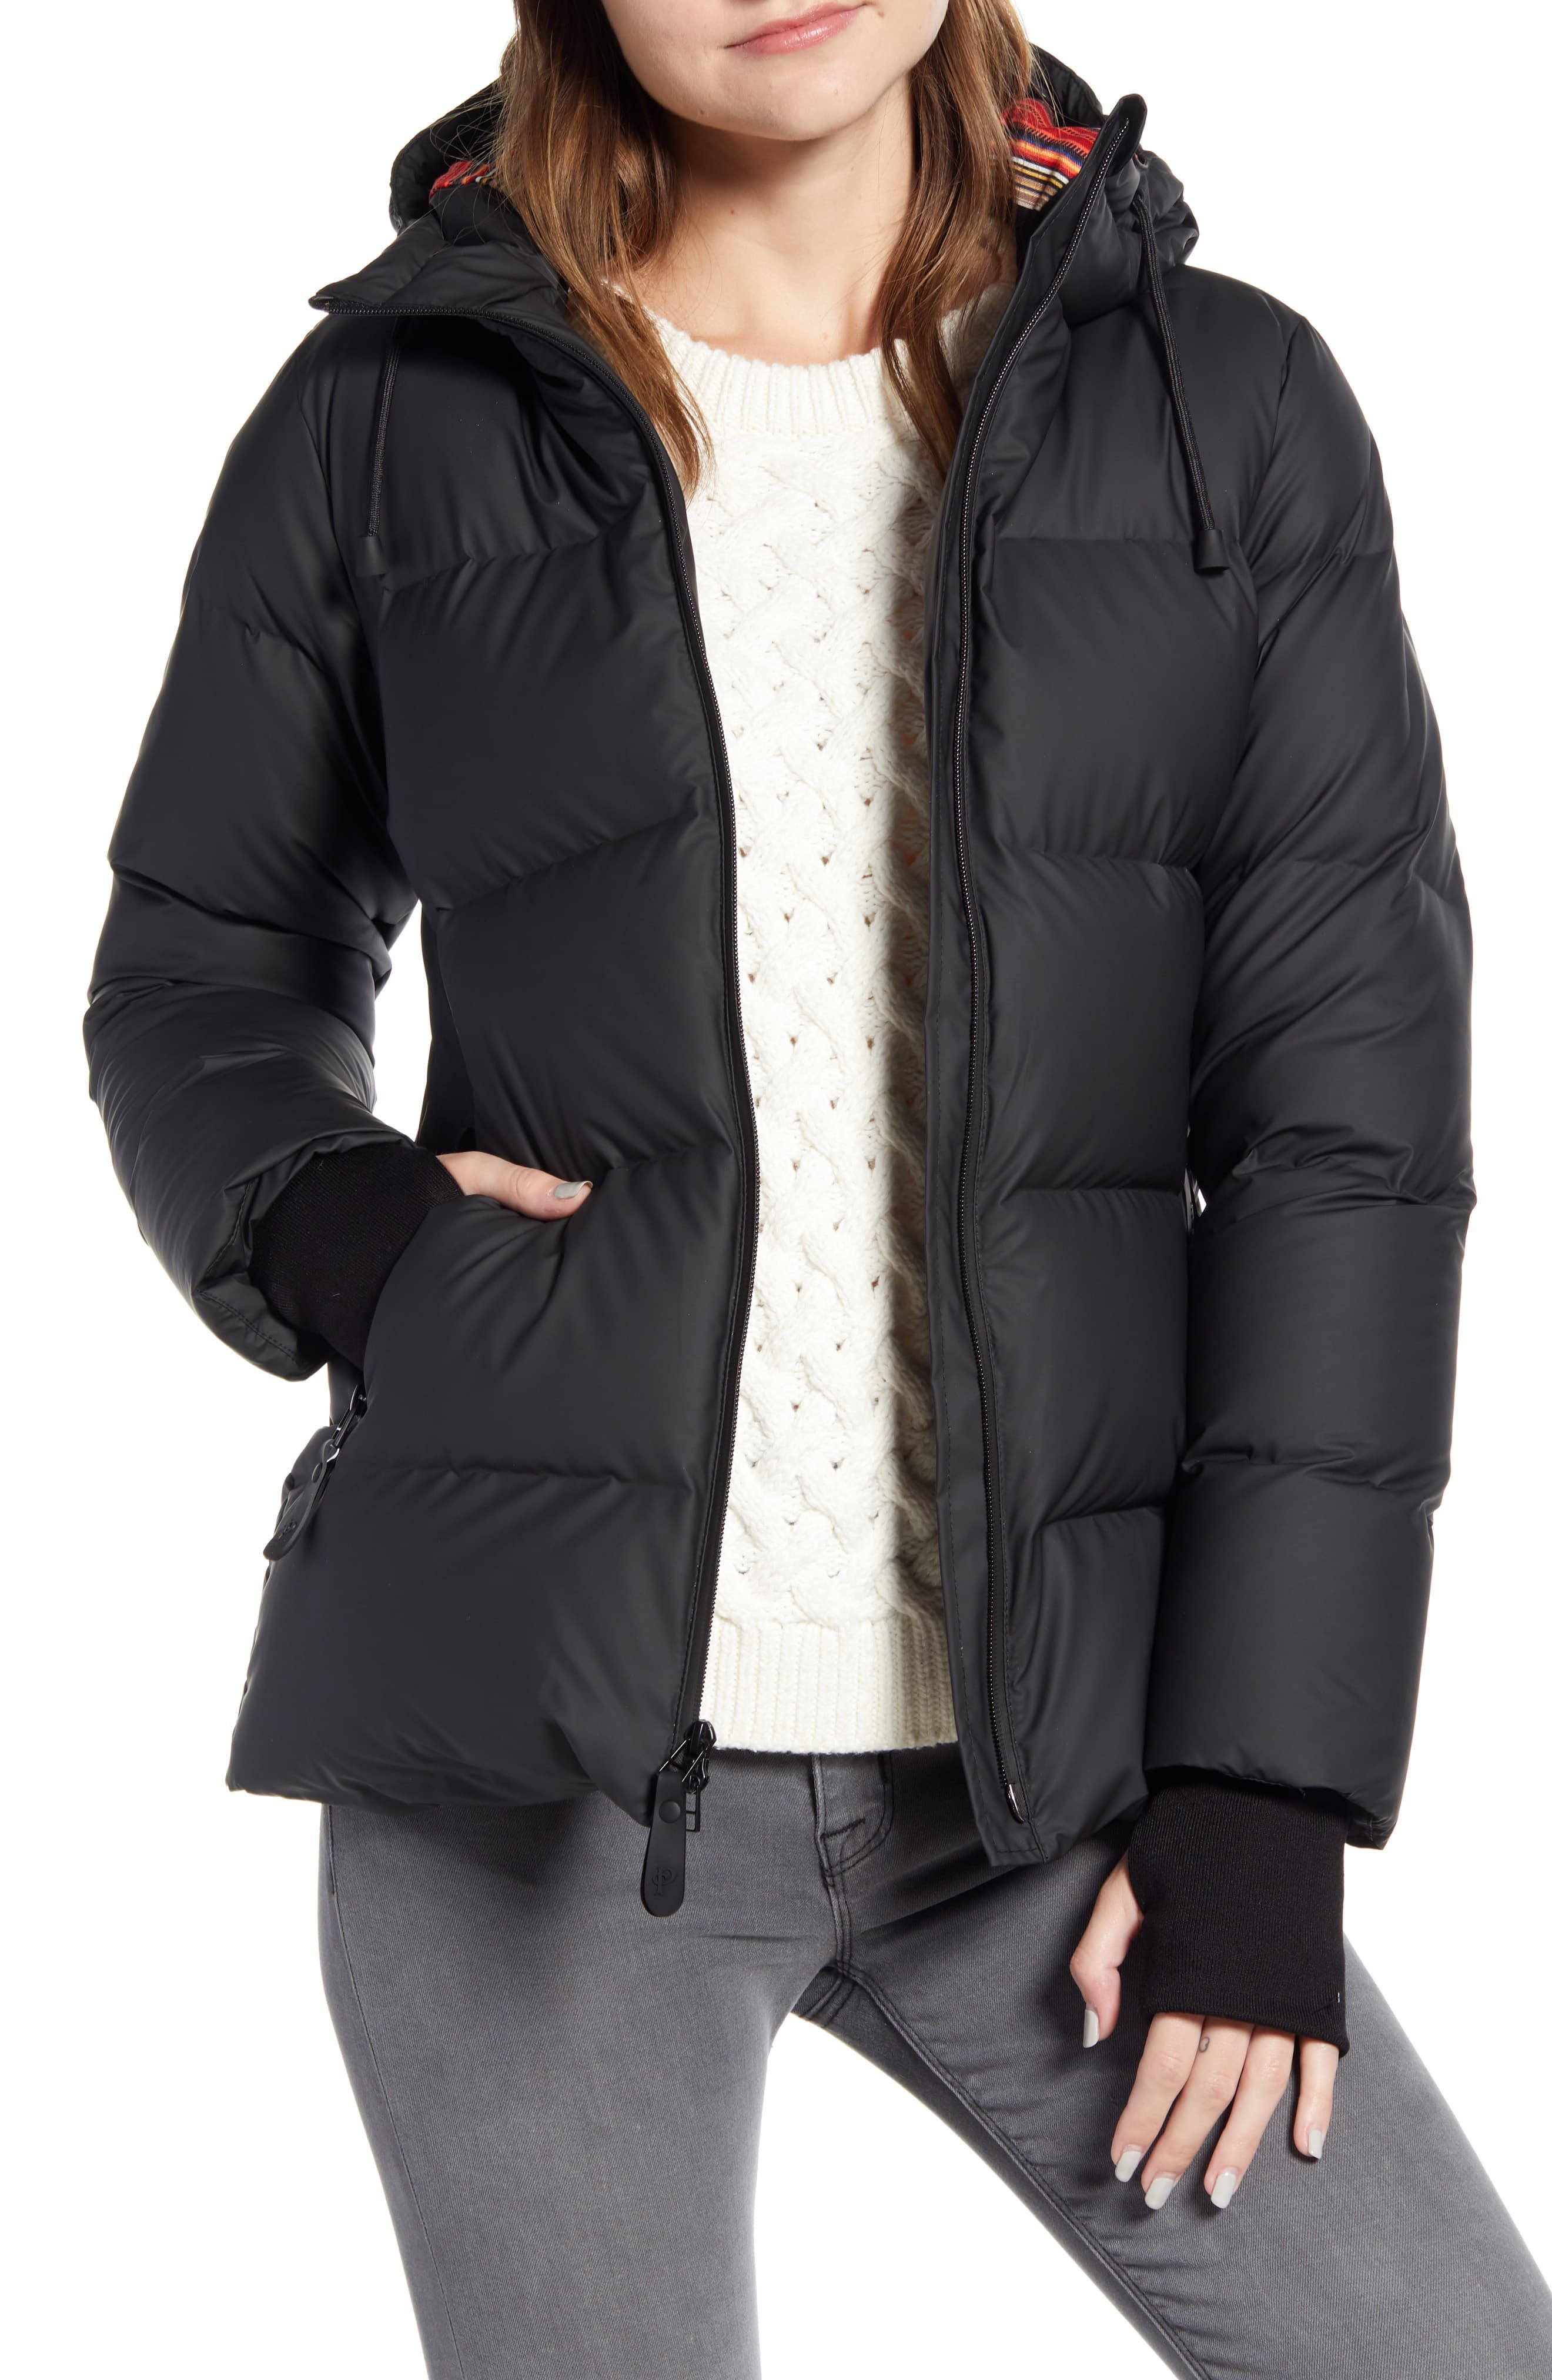 Pin By Kerry On Fall Outfits Down Coat Textured Jacket Women S Coats Jackets [ 4048 x 2640 Pixel ]